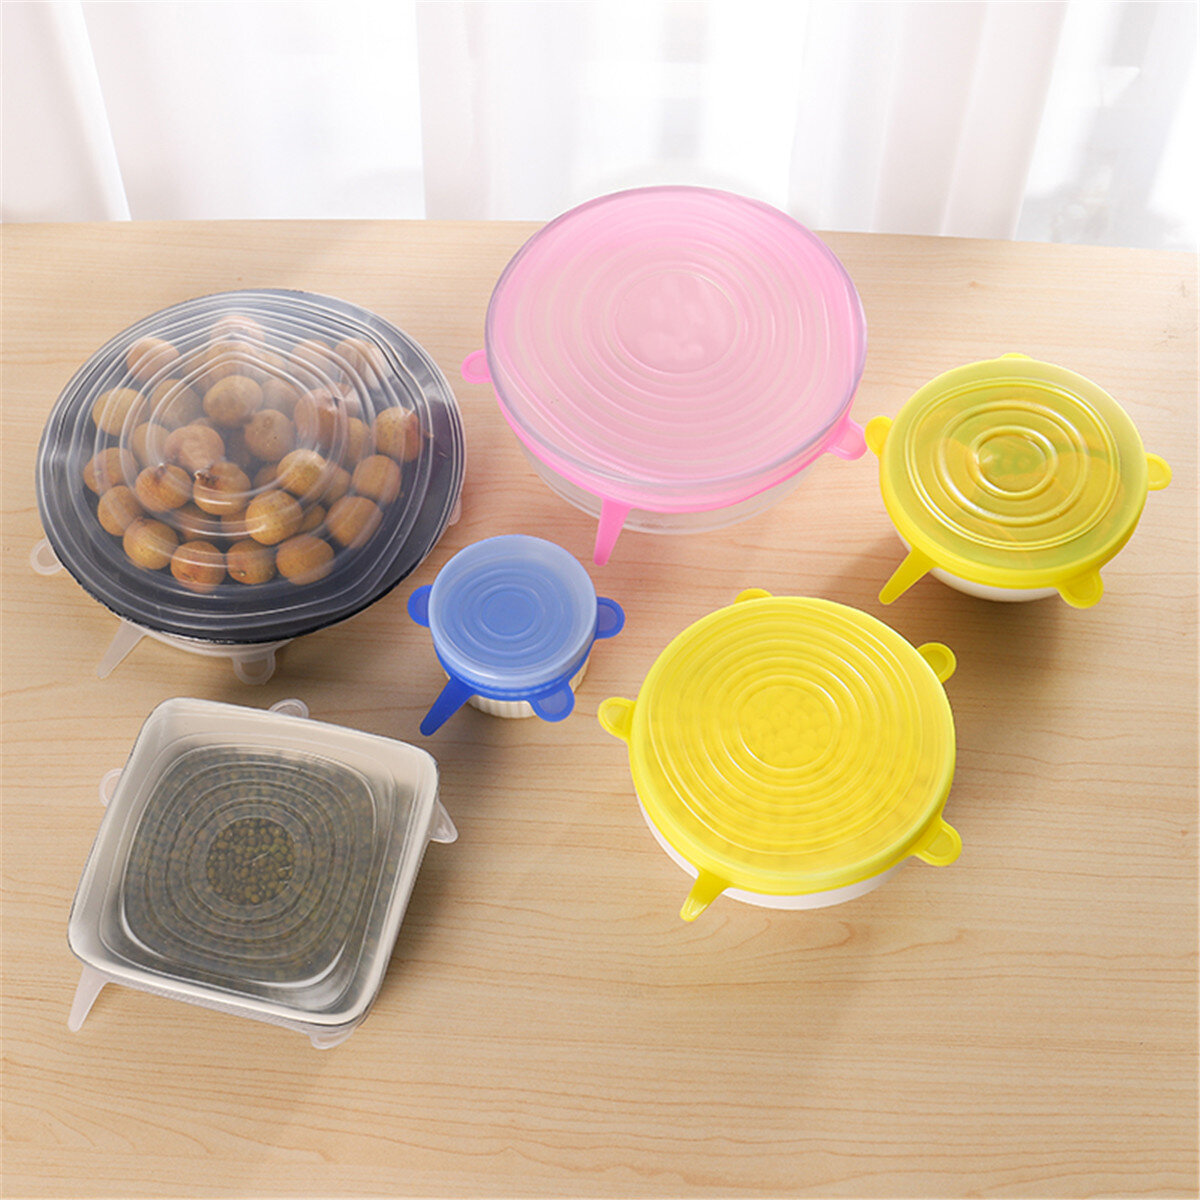 6Pcs Stretch Silicone Kitchen Food Bowl Container Cover Storage Wraps Seals Reusable Lids фото